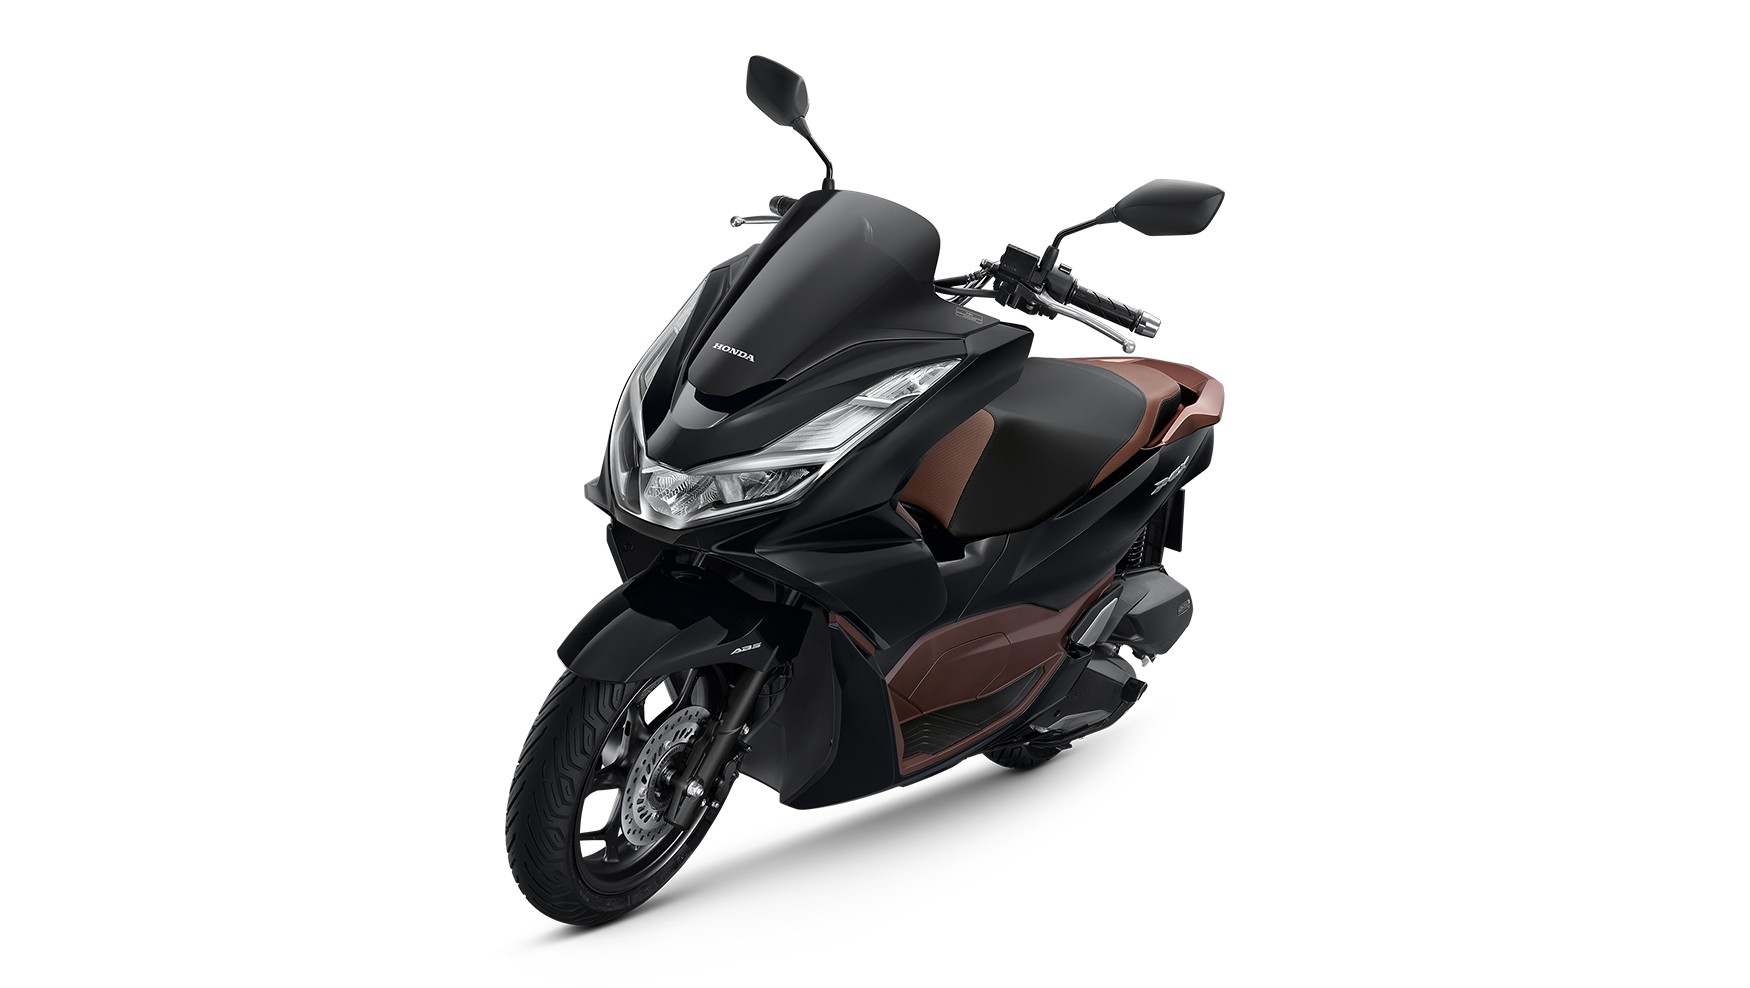 2021 Honda PCX 160 and PCX 160 e: HEV Launched in Thailand!